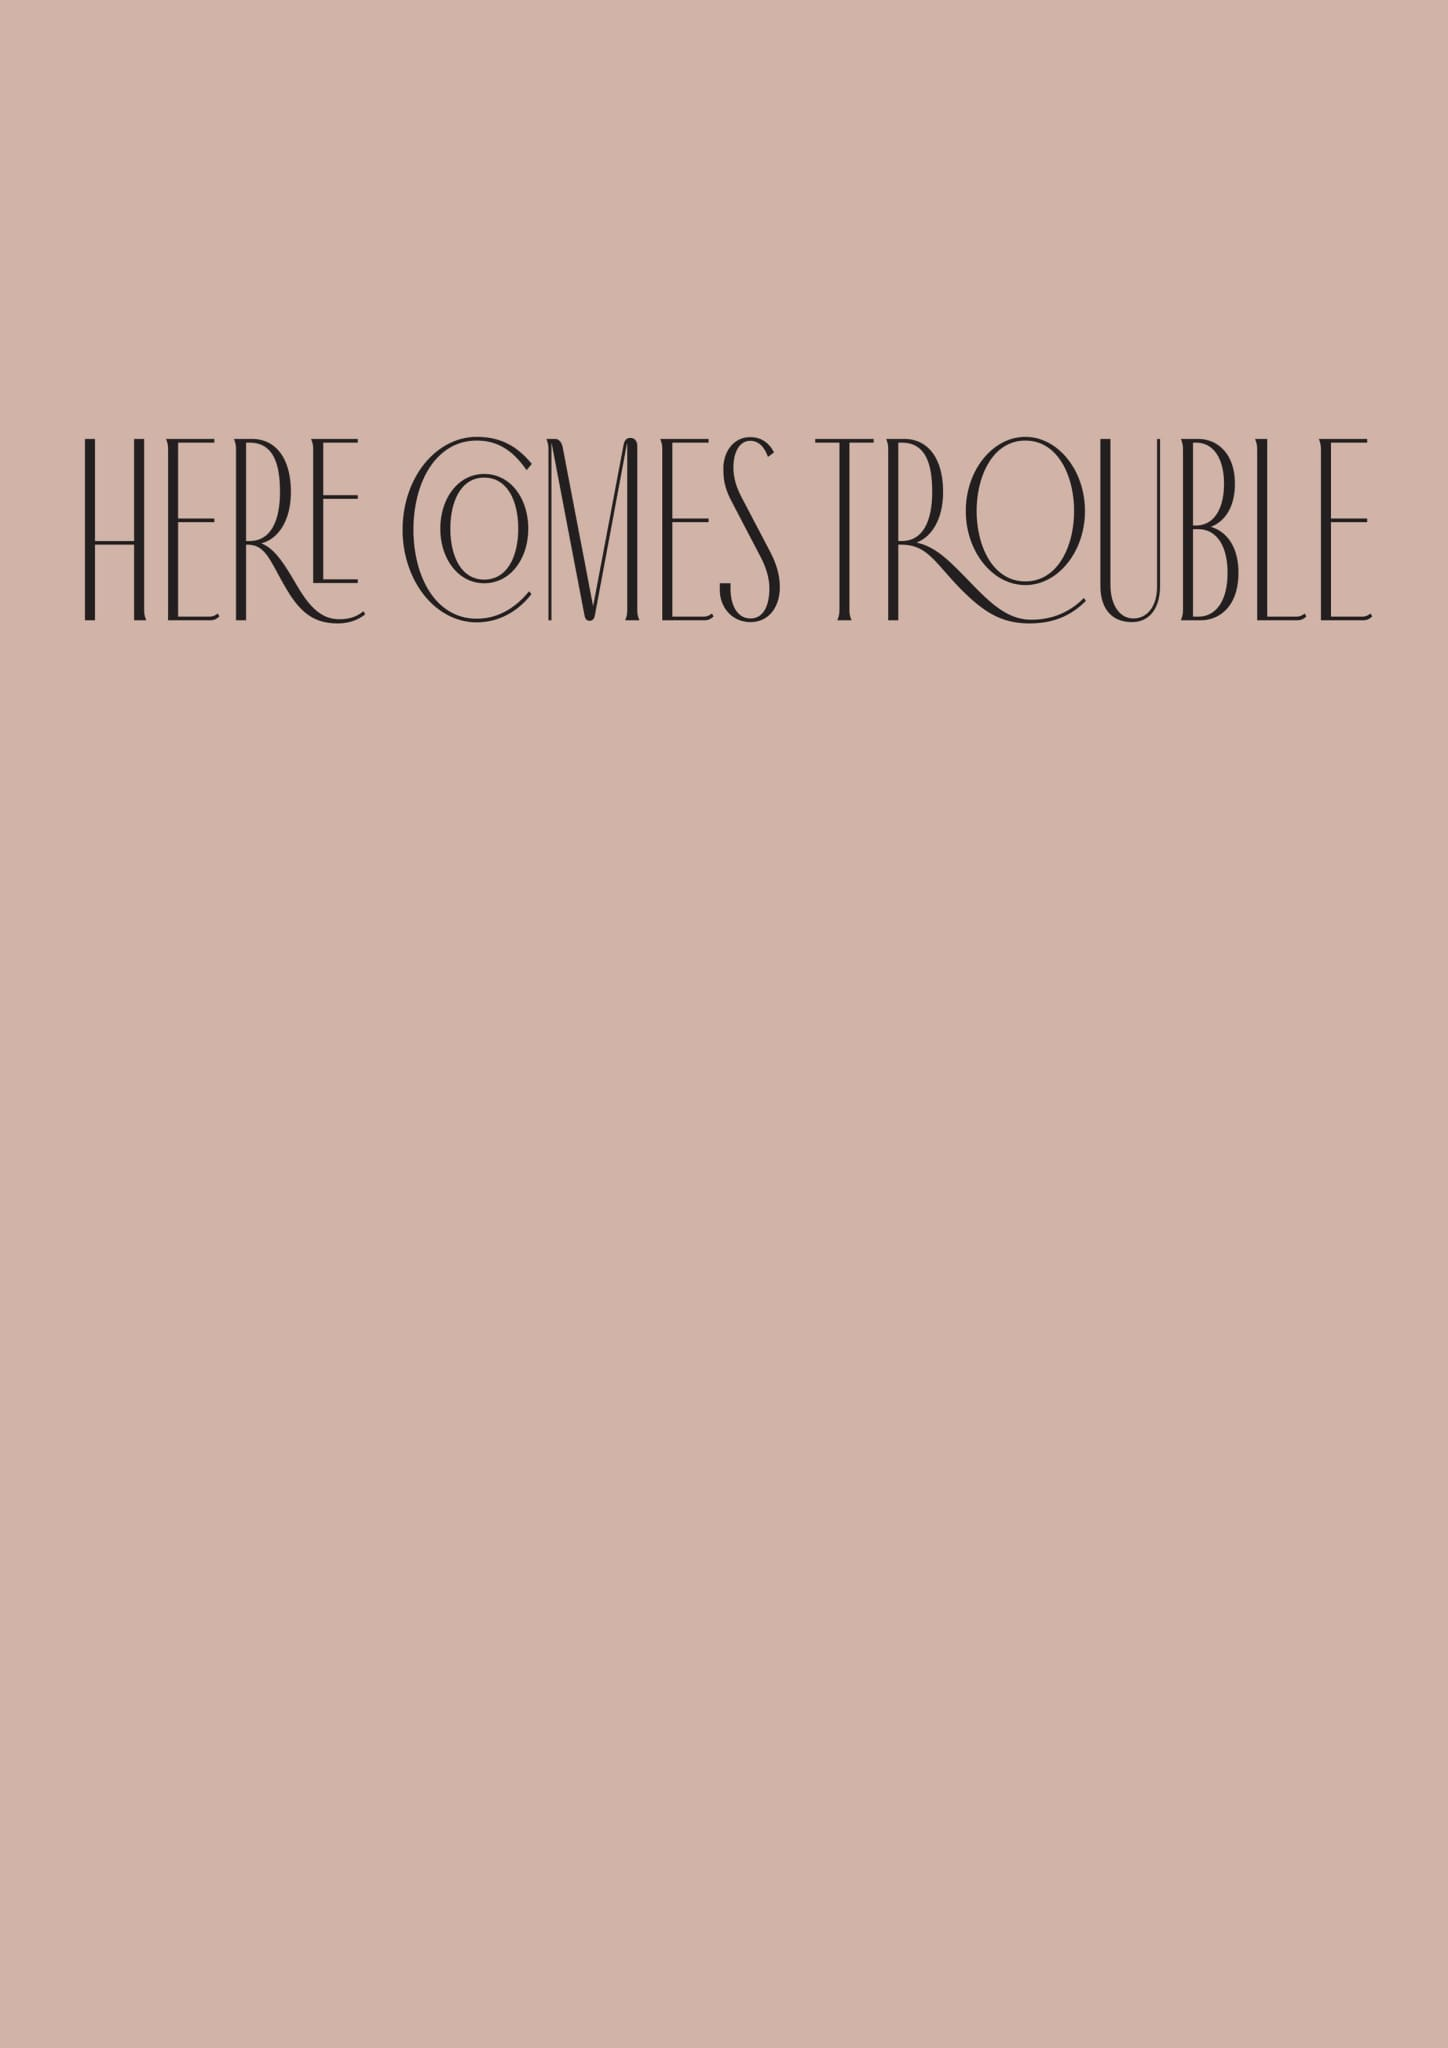 HERE COMES TROUBLE - HONEYMOON HOTEL